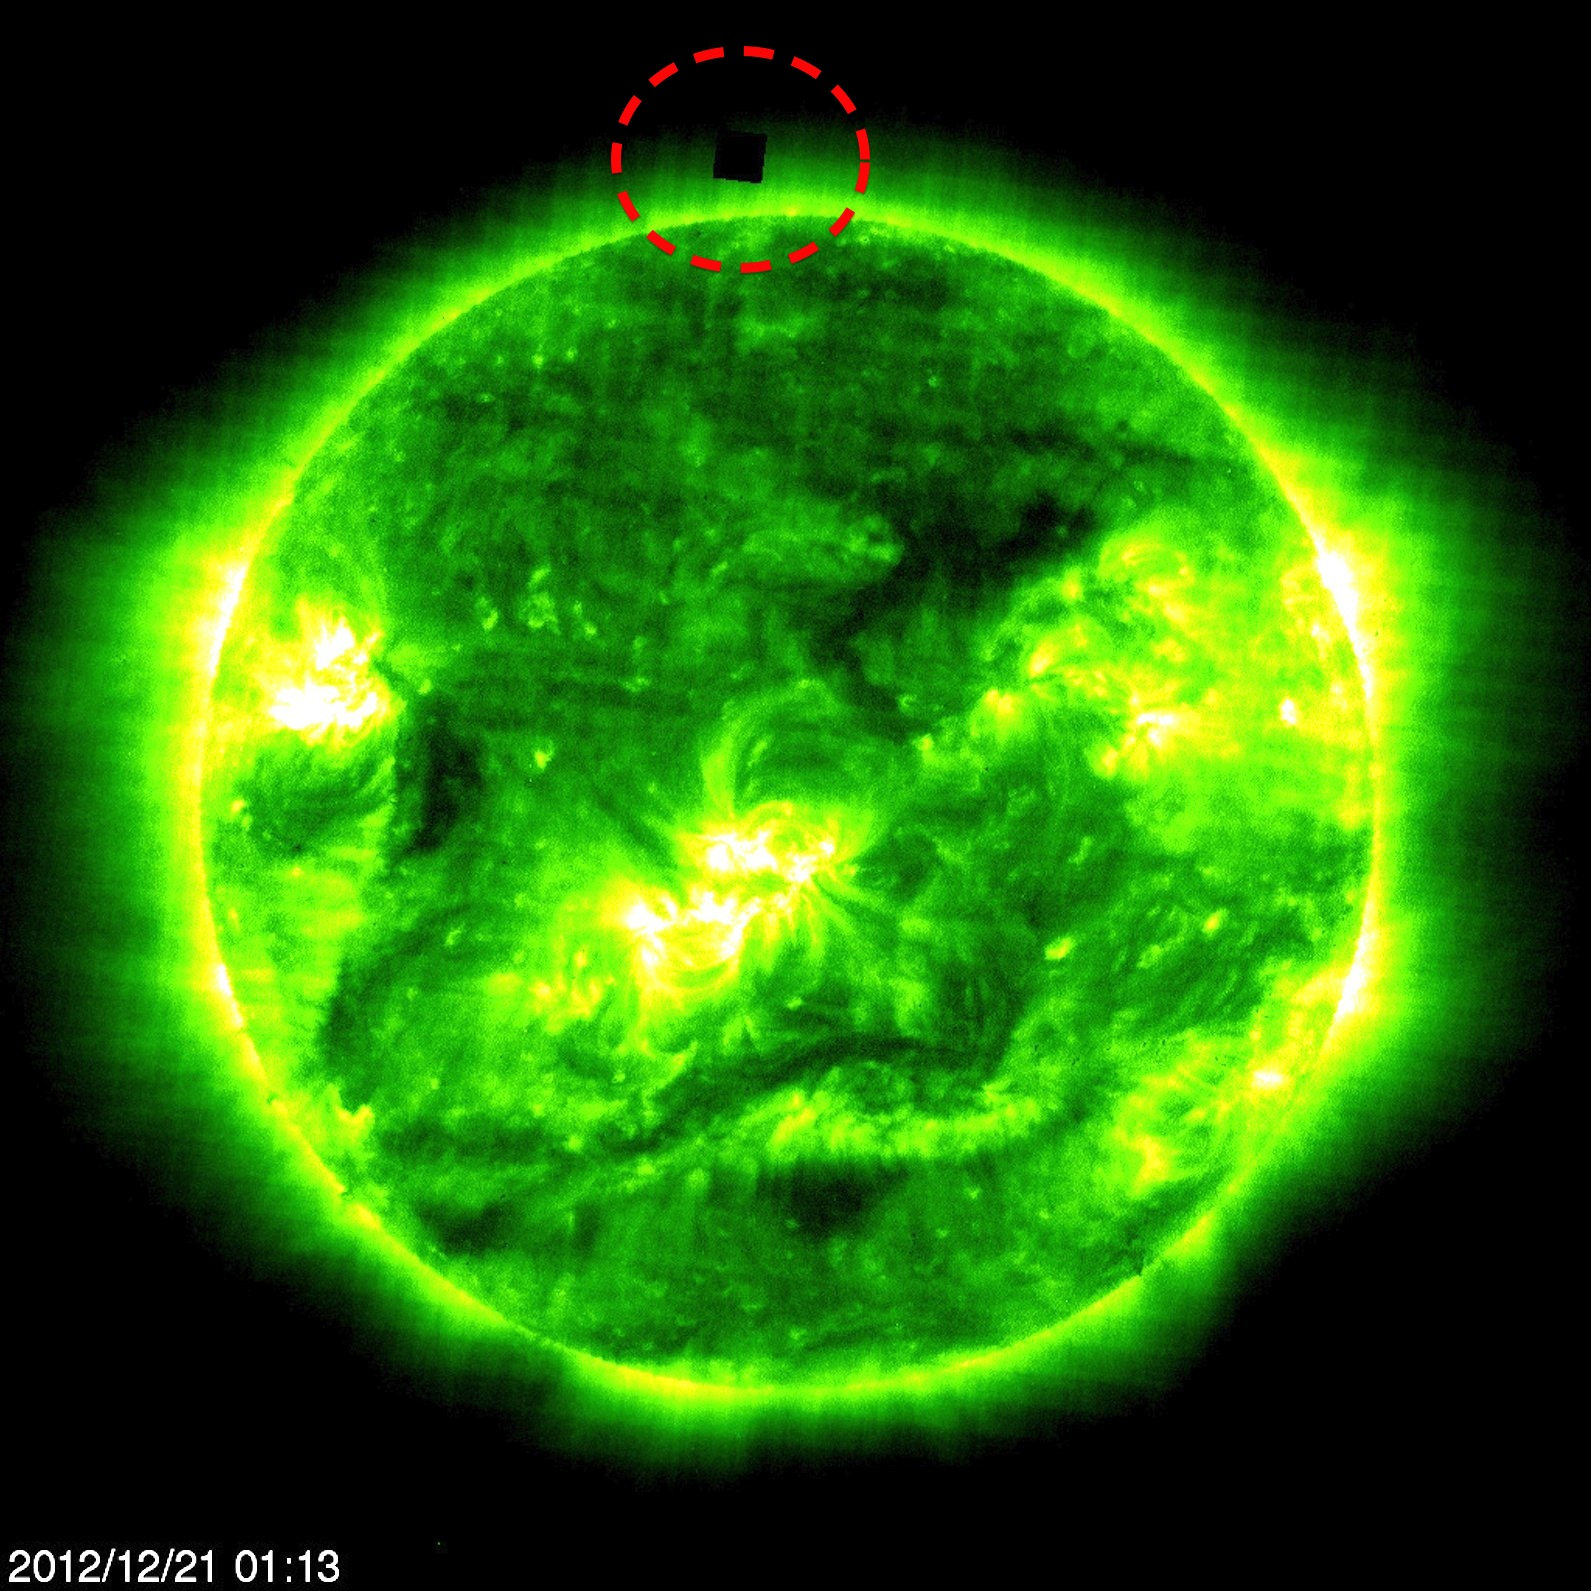 Giant Cube Recorded By NASA Near Sun On Dec 21, 2012. NASA ...